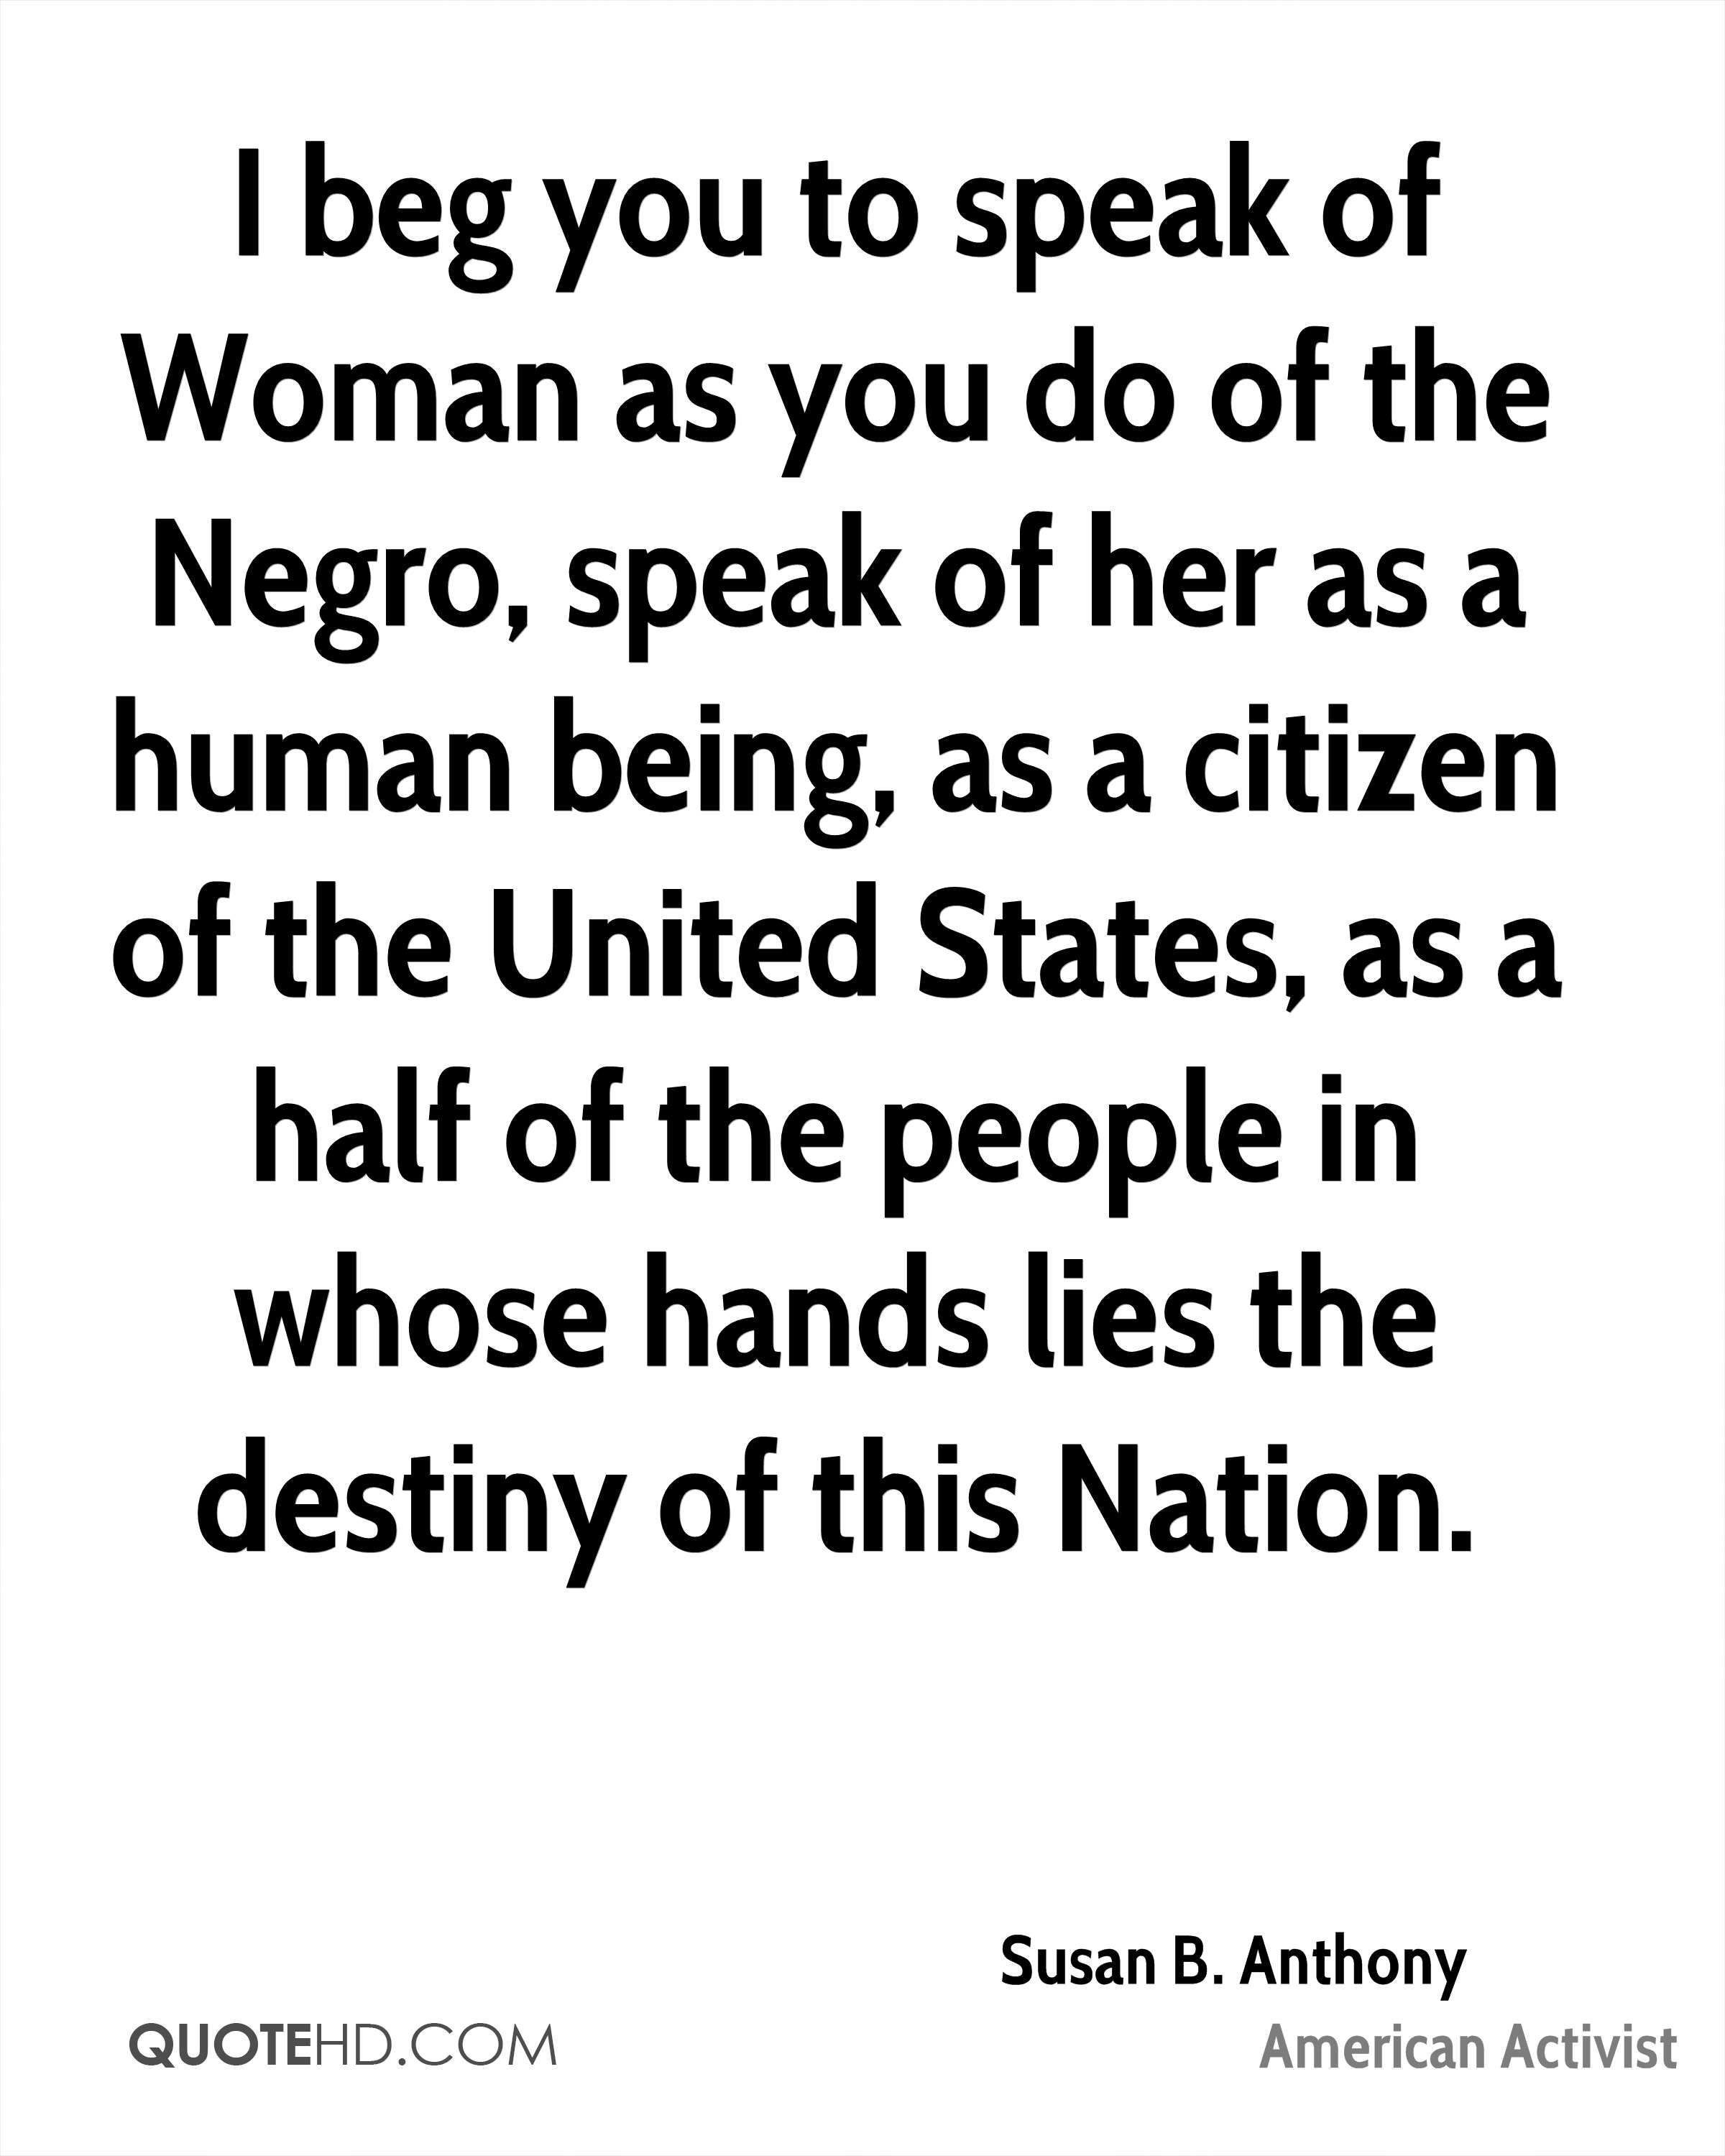 I beg you to speak of Woman as you do of the Negro, speak of her as a human being, as a citizen of the United States, as a half of the people in whose hands lies the destiny of this Nation.